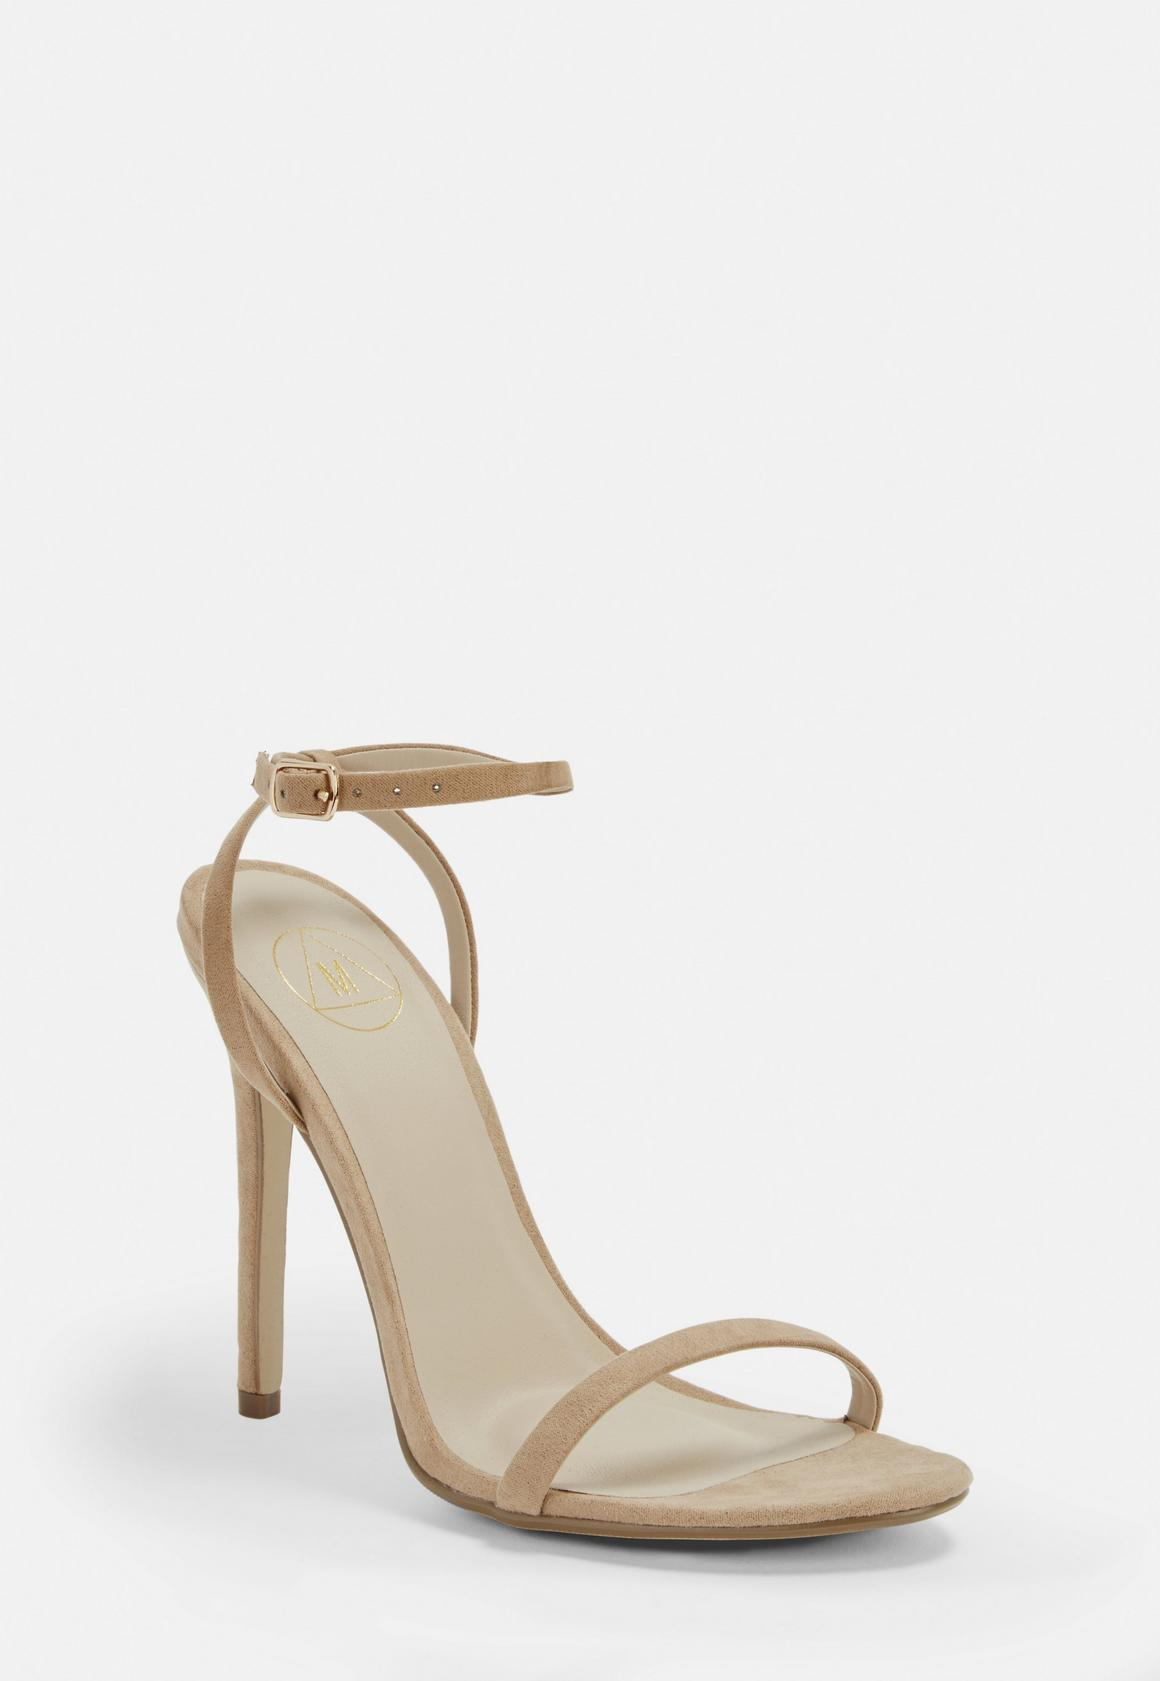 Nude Barely There Heels, $34, Missguided